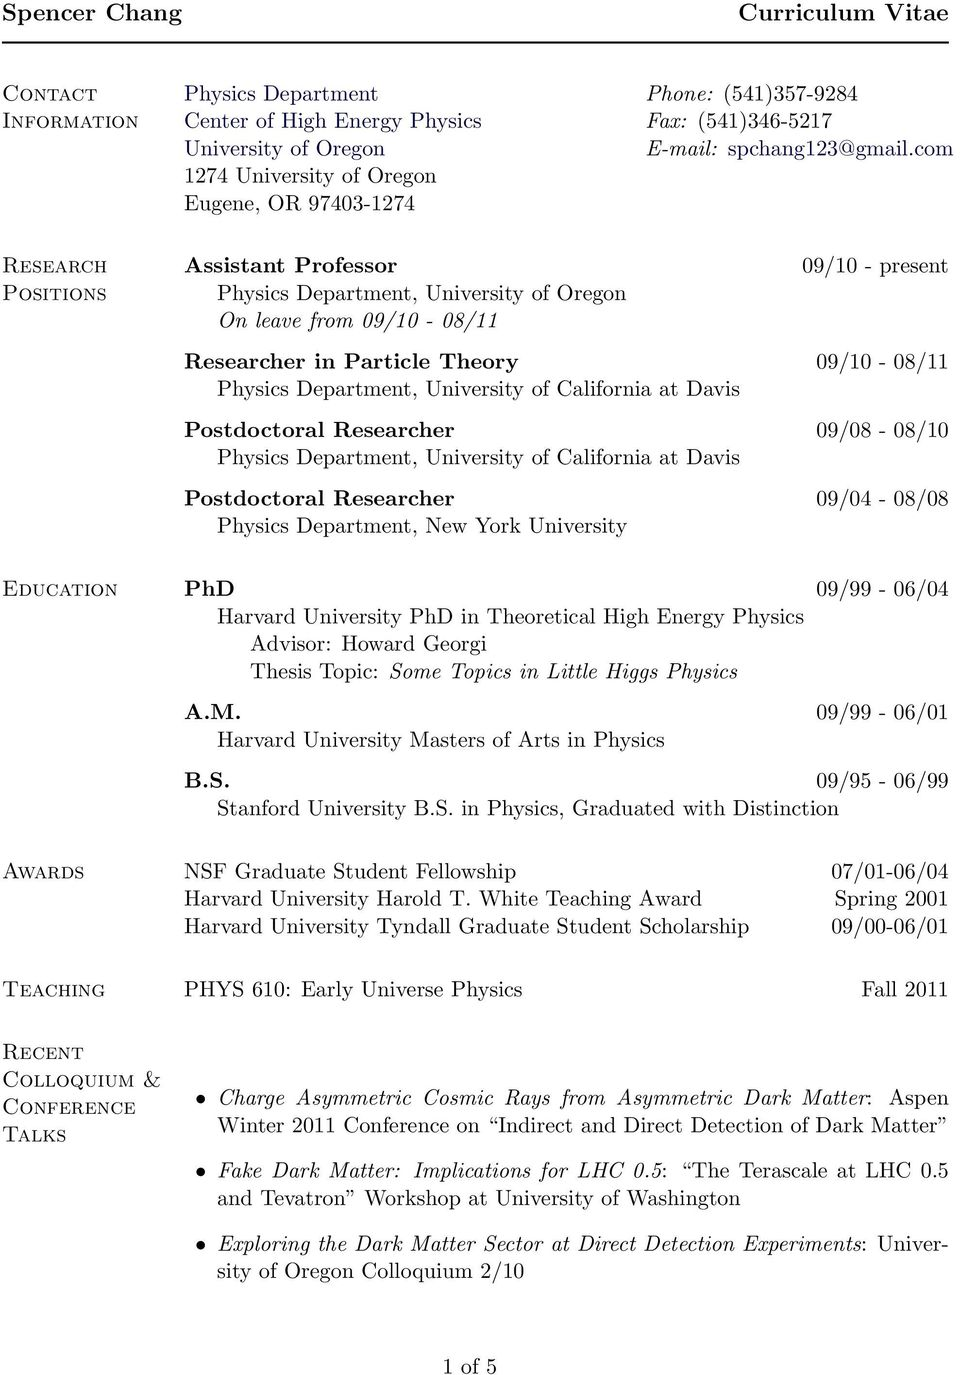 com 1274 University of Oregon Eugene, OR 97403-1274 Assistant Professor Physics Department, University of Oregon On leave from 09/10-08/11 09/10 - present Researcher in Particle Theory 09/10-08/11